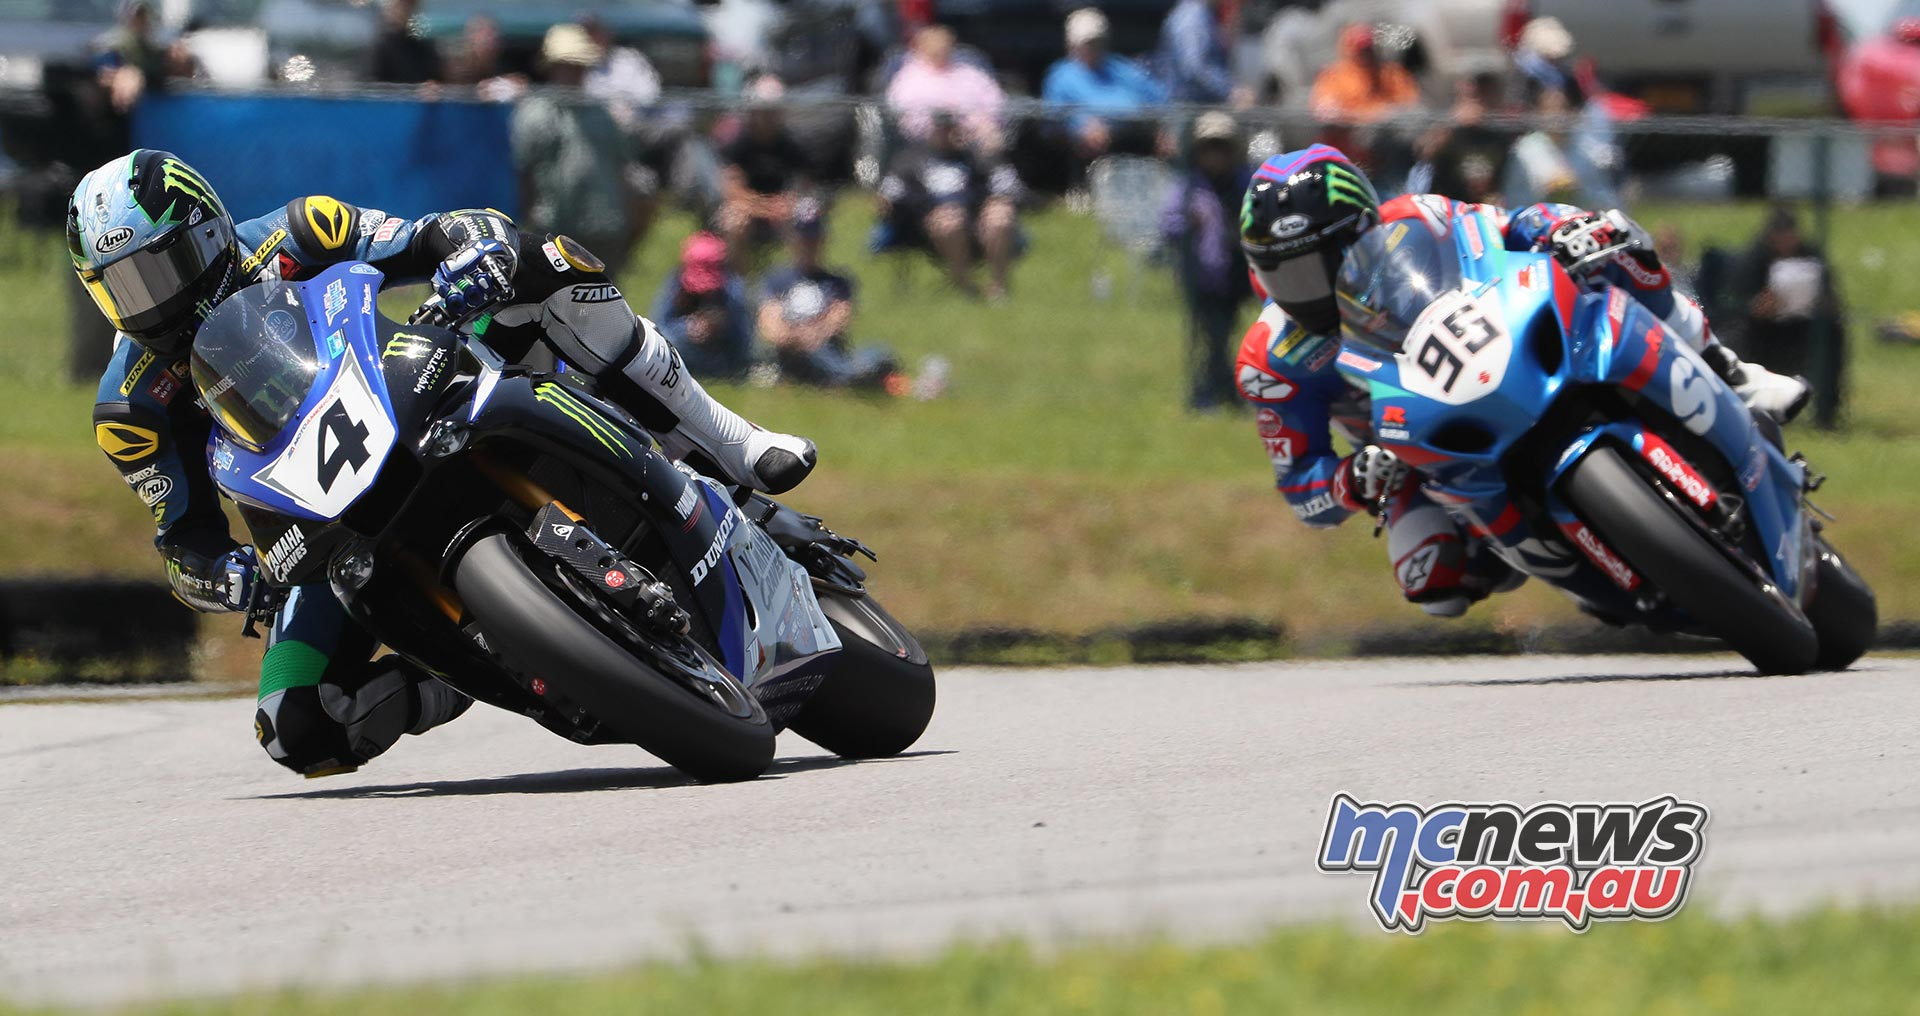 Josh Hayes (4) beat Roger Hayden in the first of two MotoAmerica Superbike races at VIR to score his first victory of the 2016 season. Photography by Brian J. Nelson.